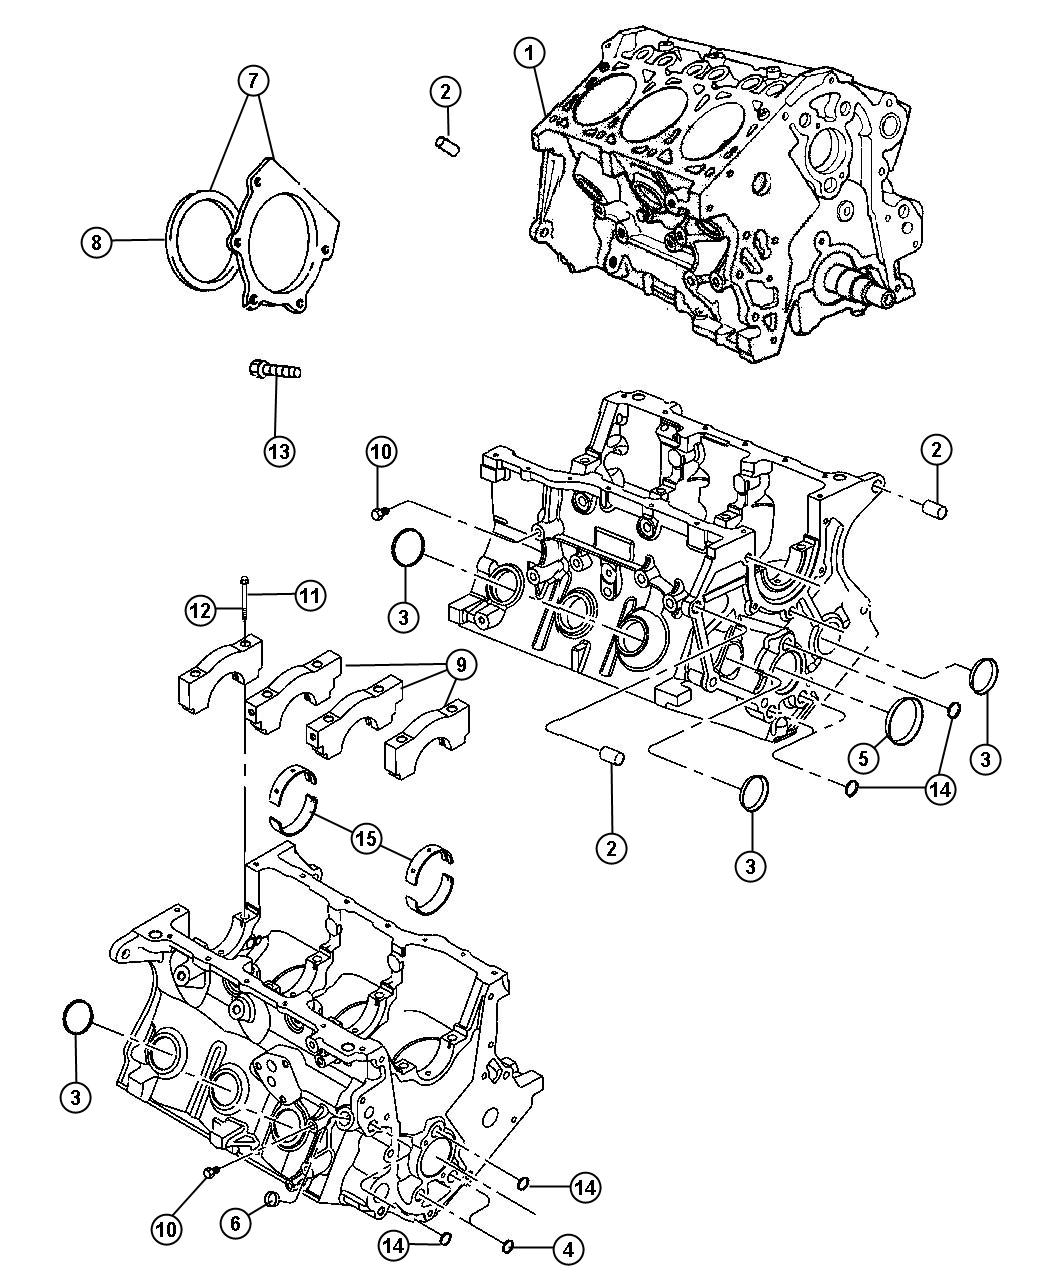 tags: #front view of 1997 camaro v6 3#1997 chevy v6 3 8 l diagram#1997  camaro v6 3#1997 camaro 3#1997 chevy v6 3#1998 camaro 3 8 engine diagram#1998